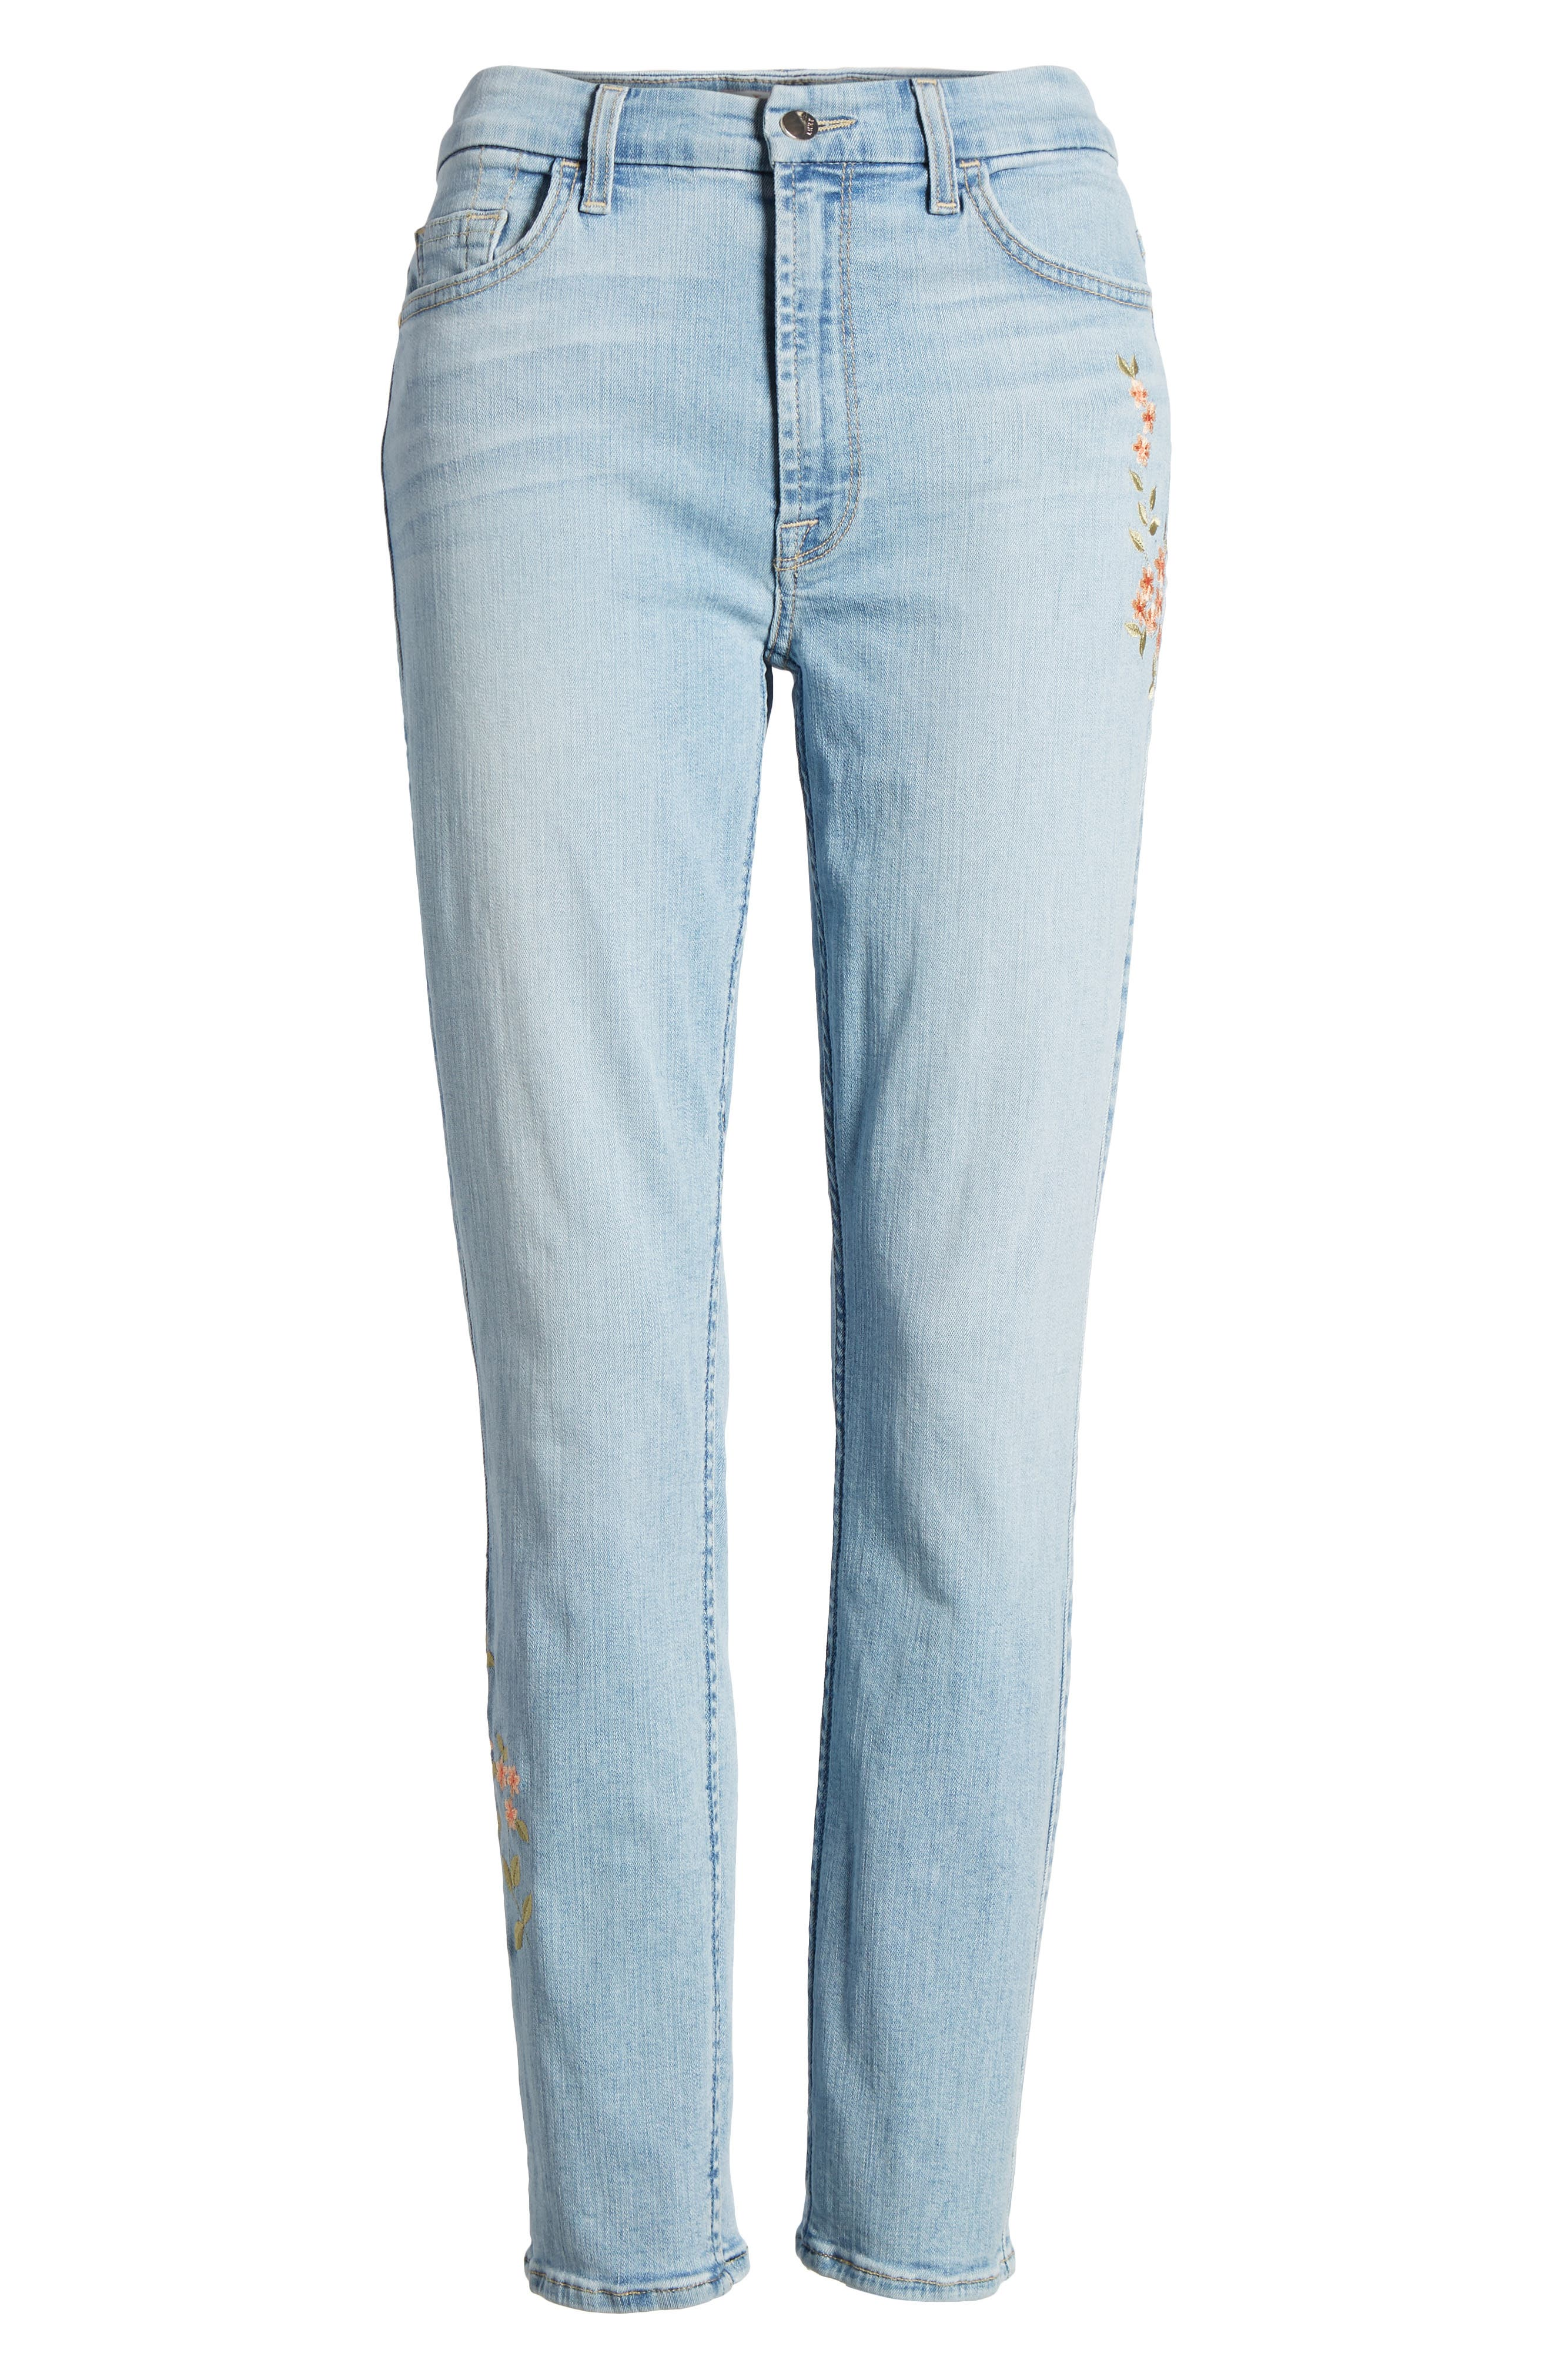 JEN7 BY 7 FOR ALL MANKIND, Embroidered Slim Boyfriend Jeans, Alternate thumbnail 7, color, RICHE TOUCH PLAYA VISTA